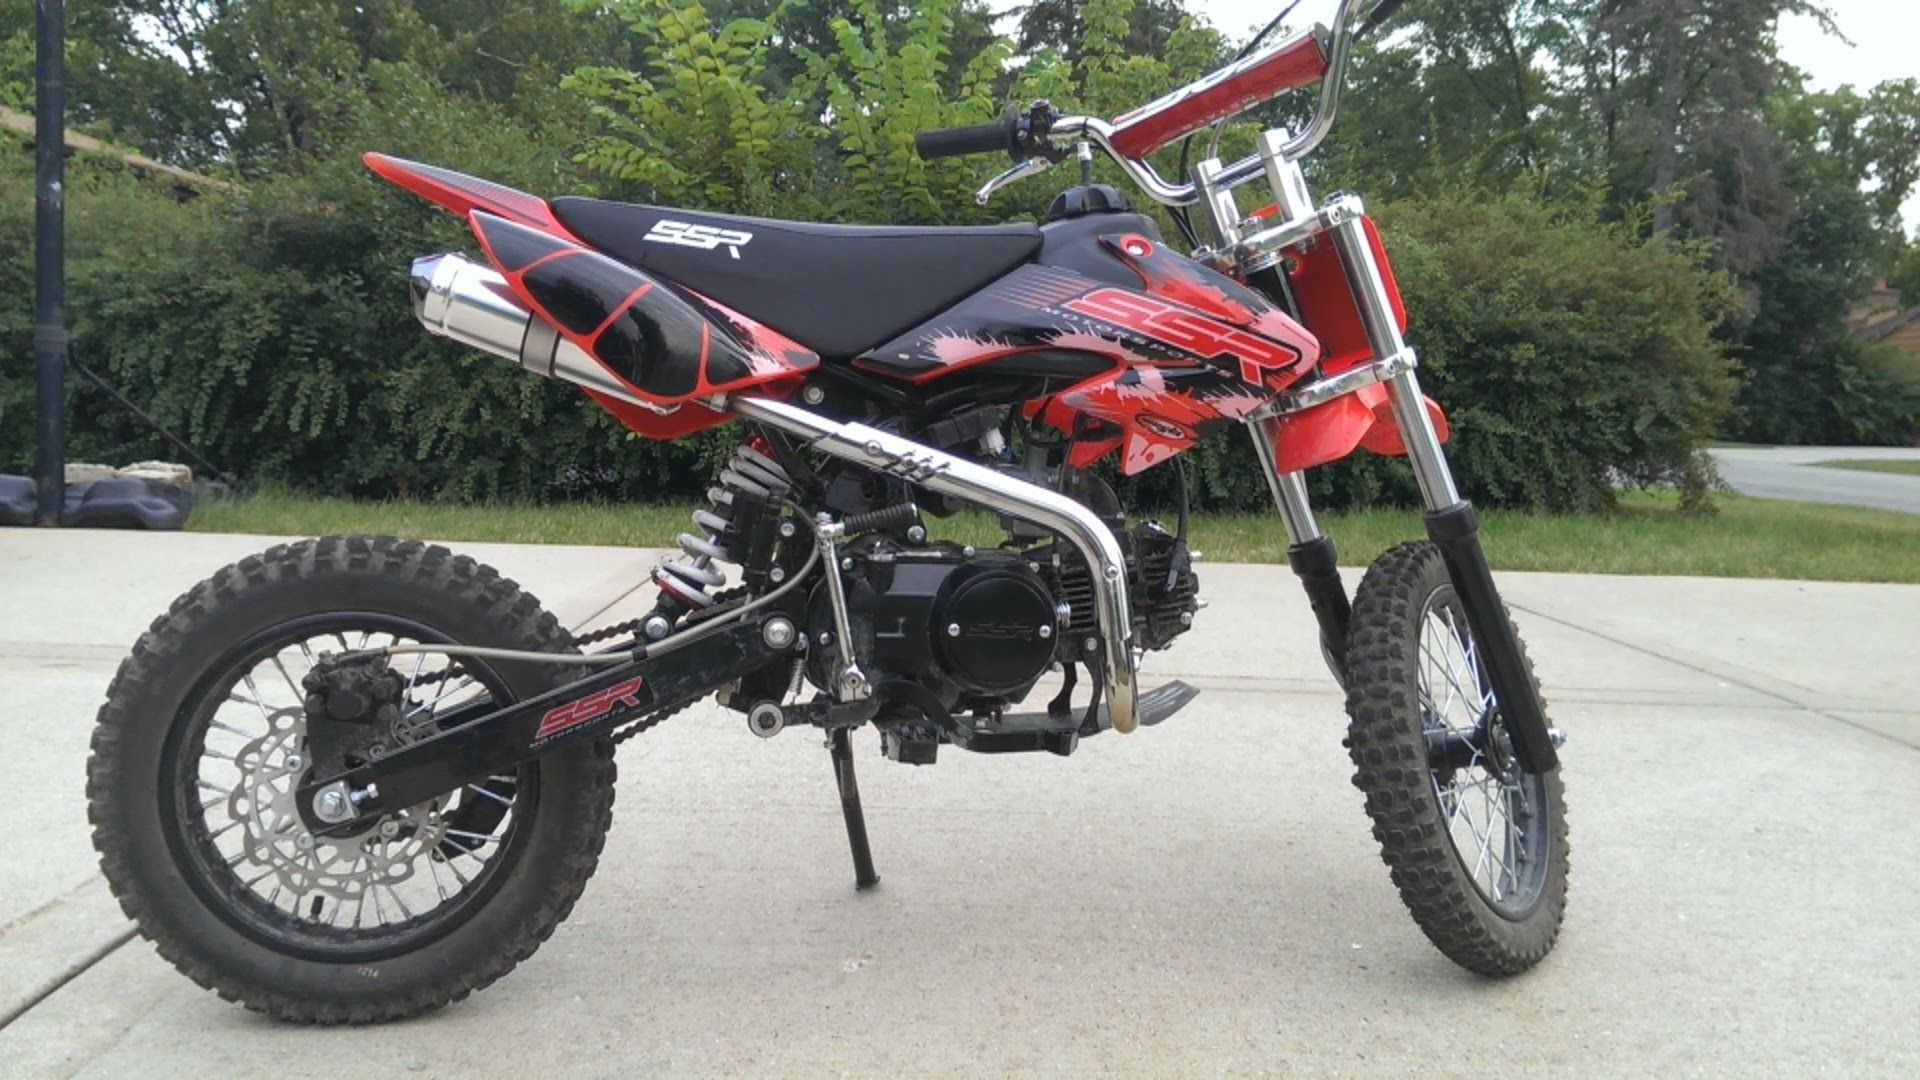 2013 Ssr 125cc Pit Bike Review And Fly By Bike Reviews Pit Bike